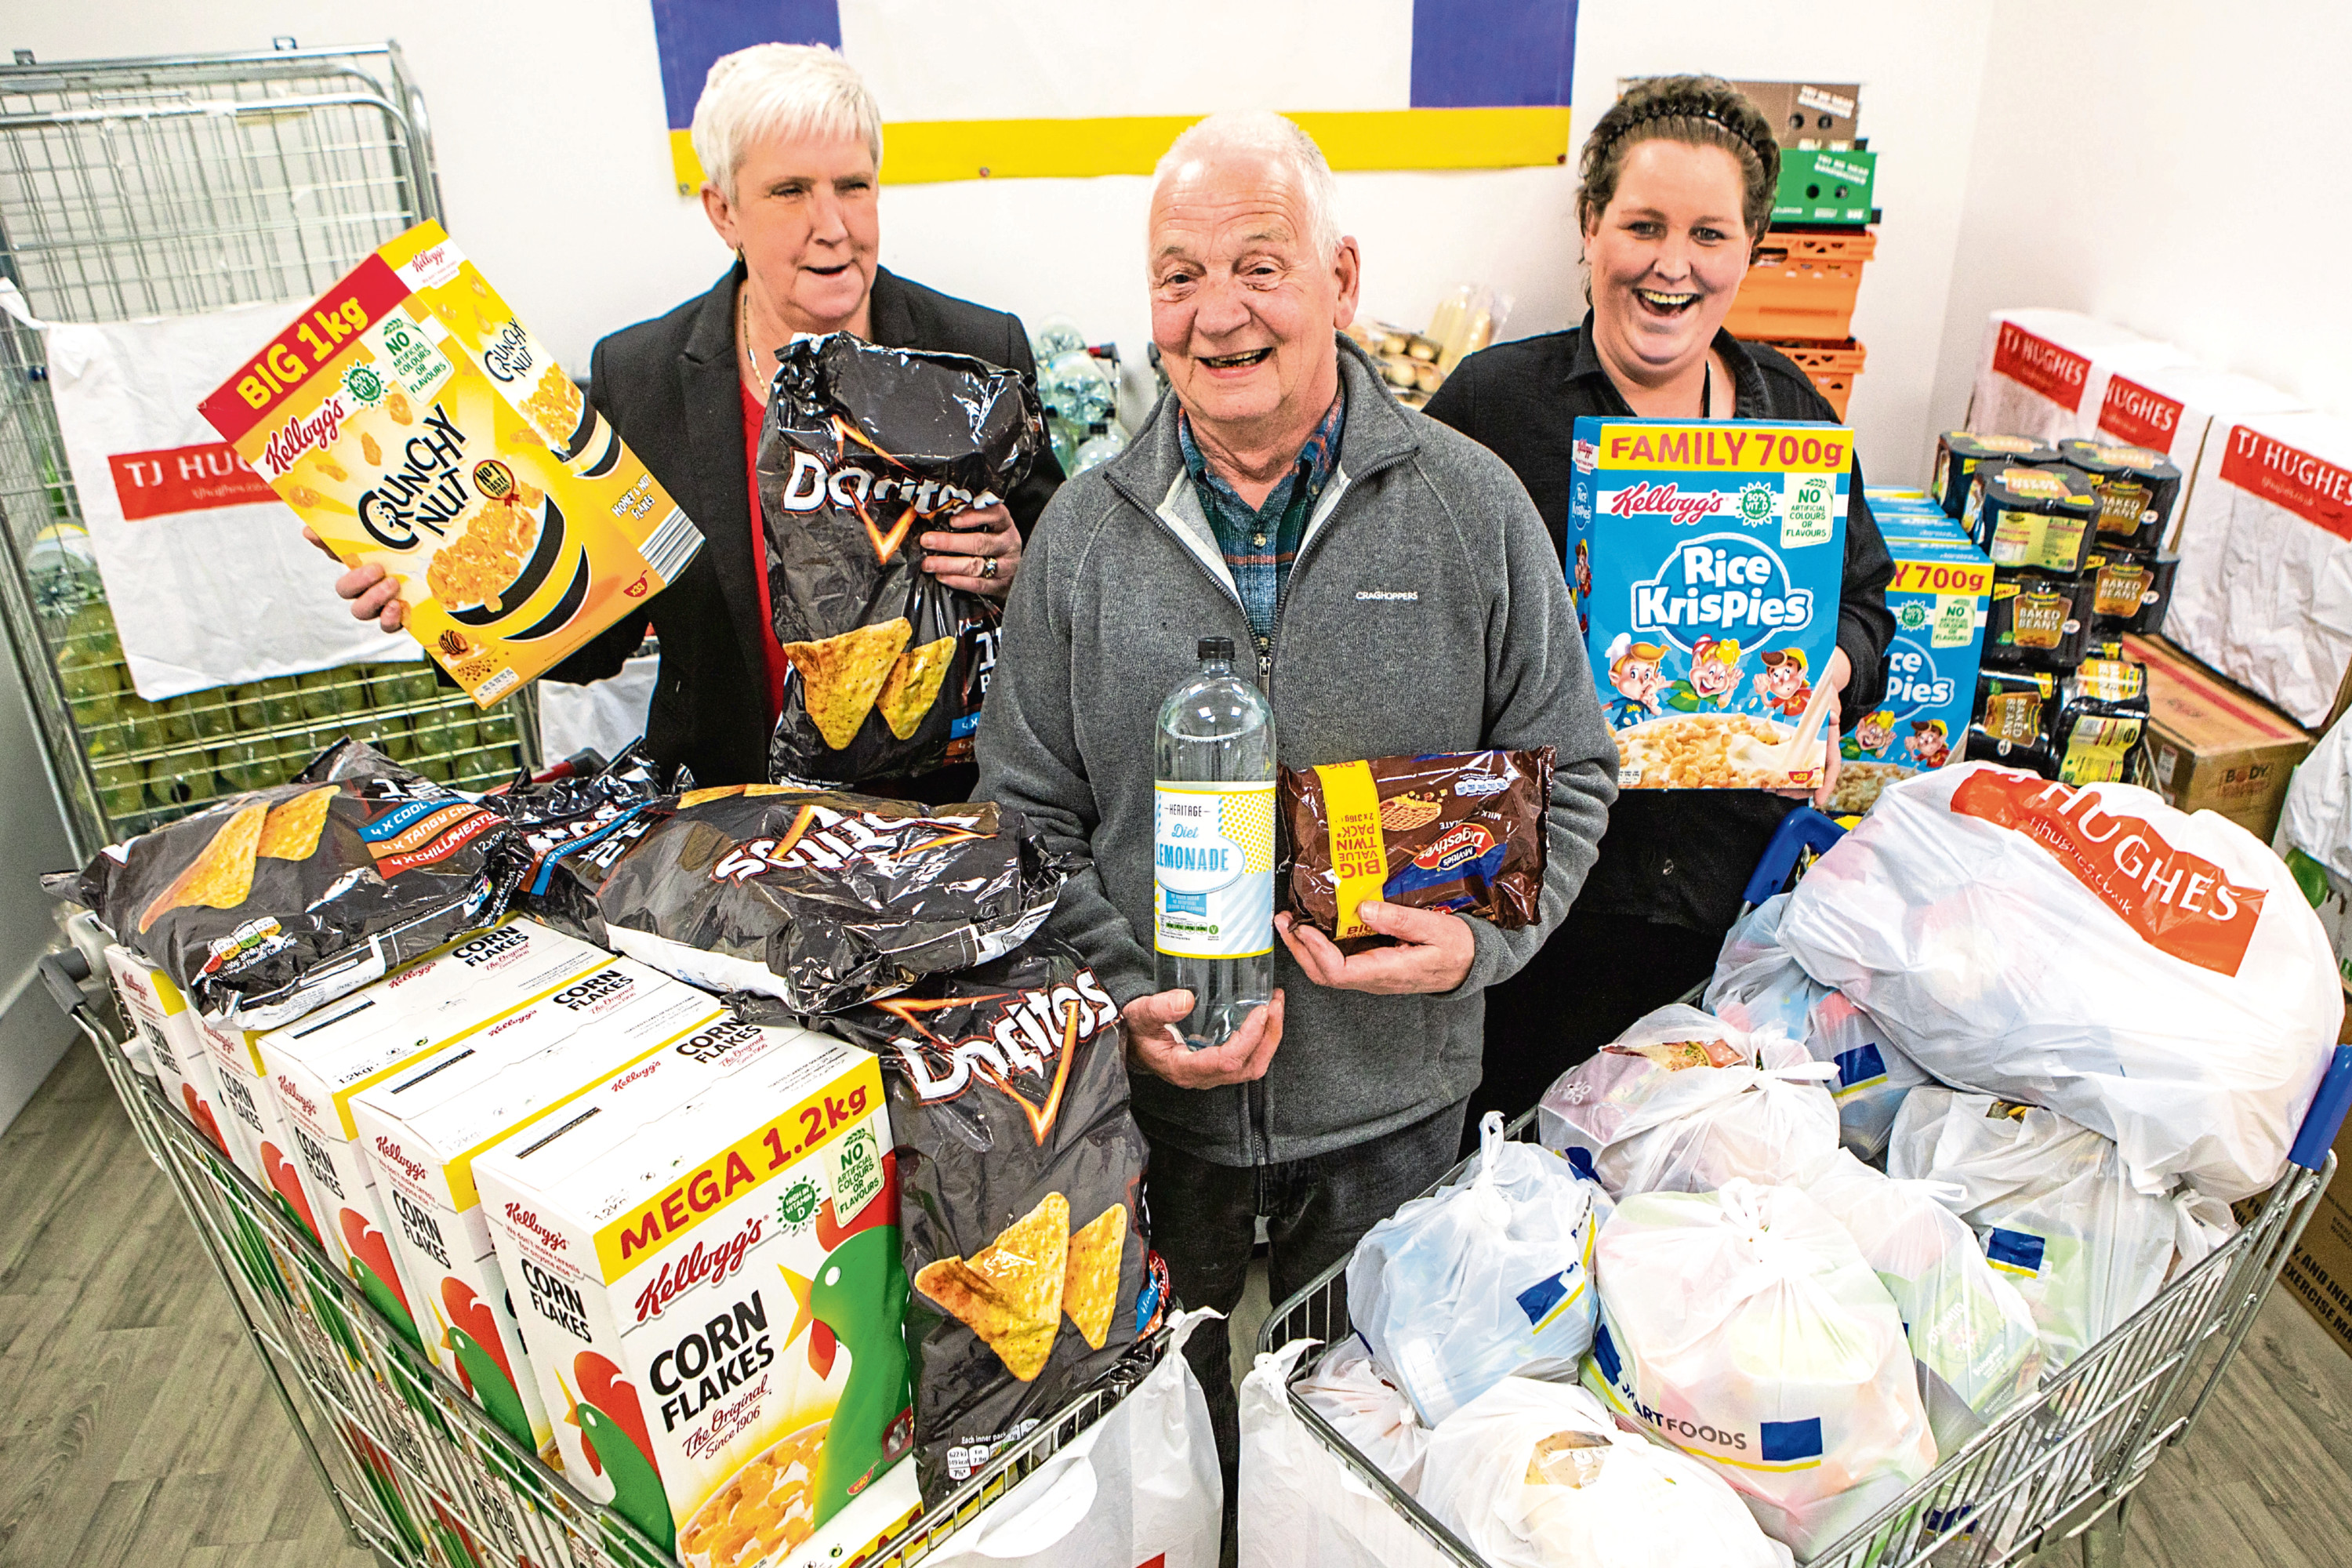 Picture shows in the centre is Chic Lowe (volunteer with Trussell Trust) alongside Ann Whyte (left, TJ Hughes Store Manager) and Kerry Sands (right, TJ Huhges Team Leader). TJ Hughes, Wellgate Centre, Dundee.